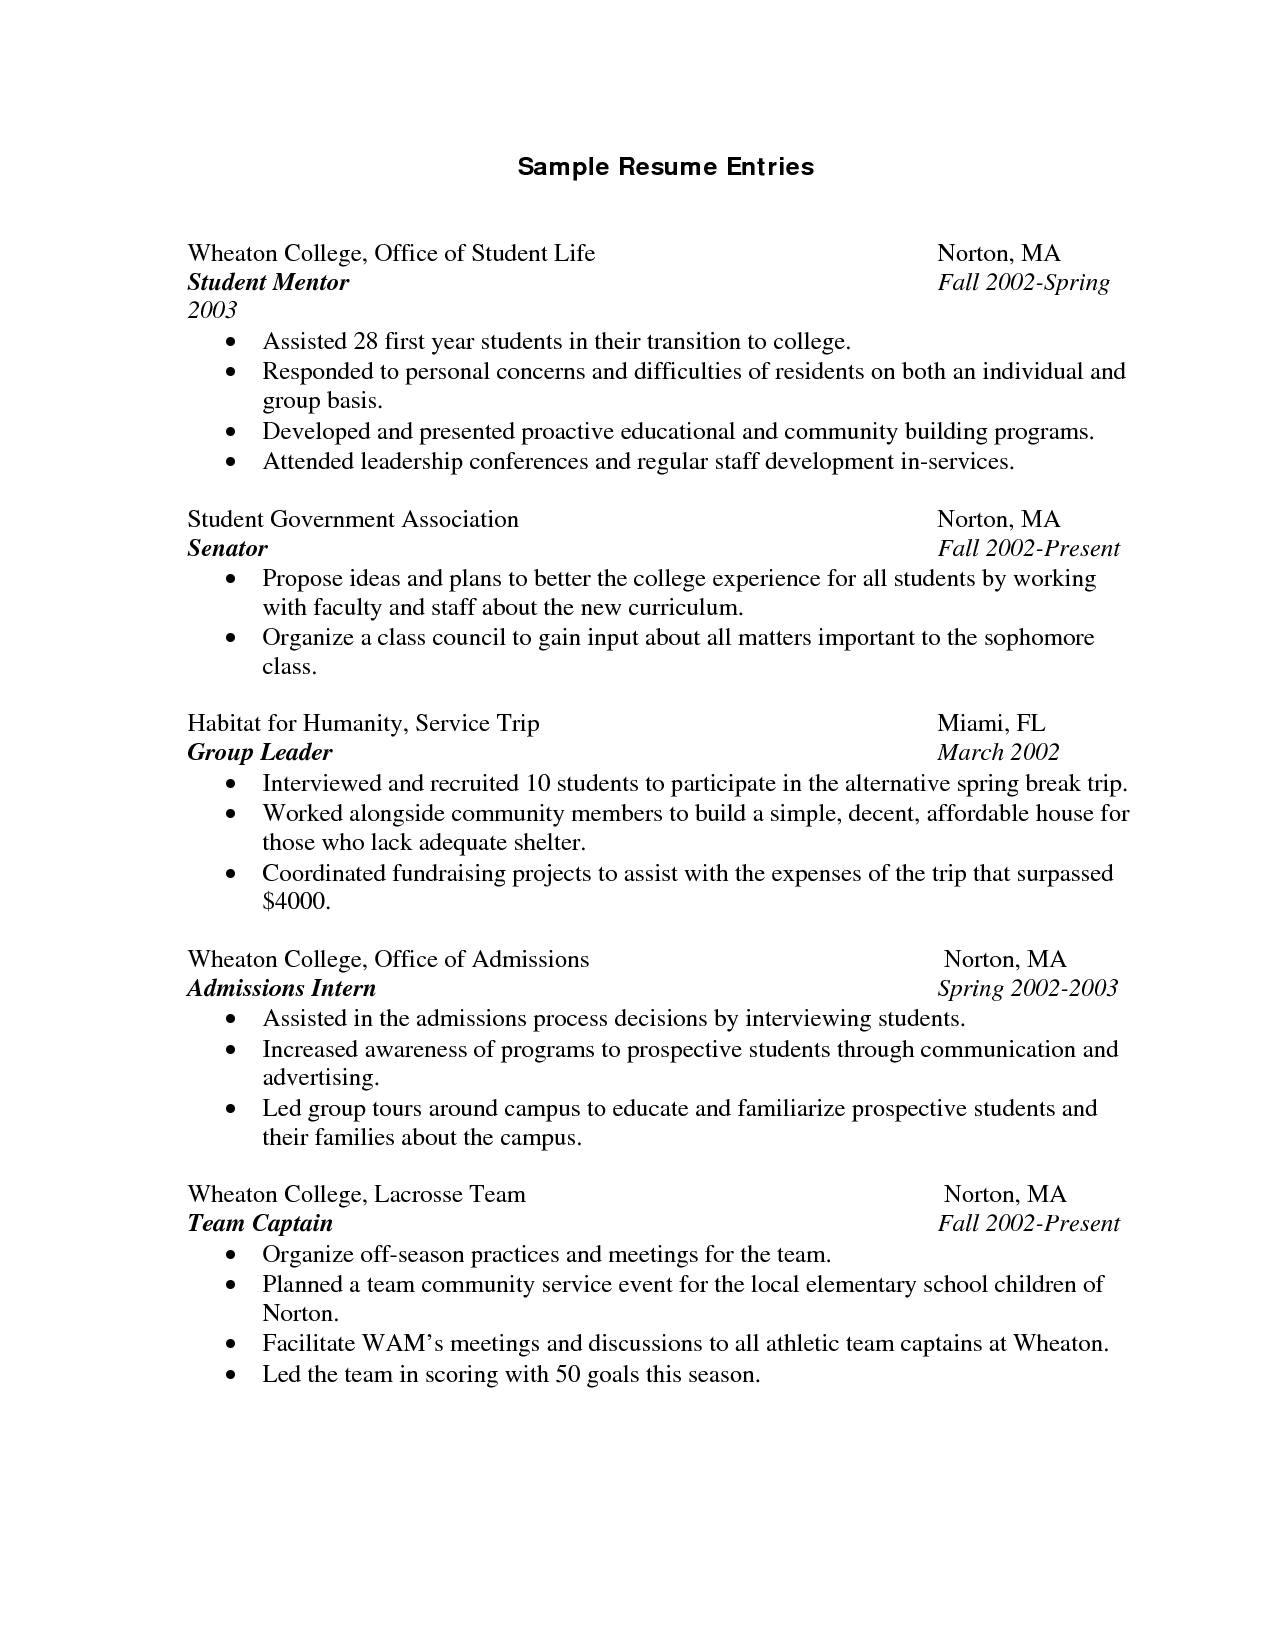 Resume Format Samples Resume Template For College Students  Httpwwwresumecareer